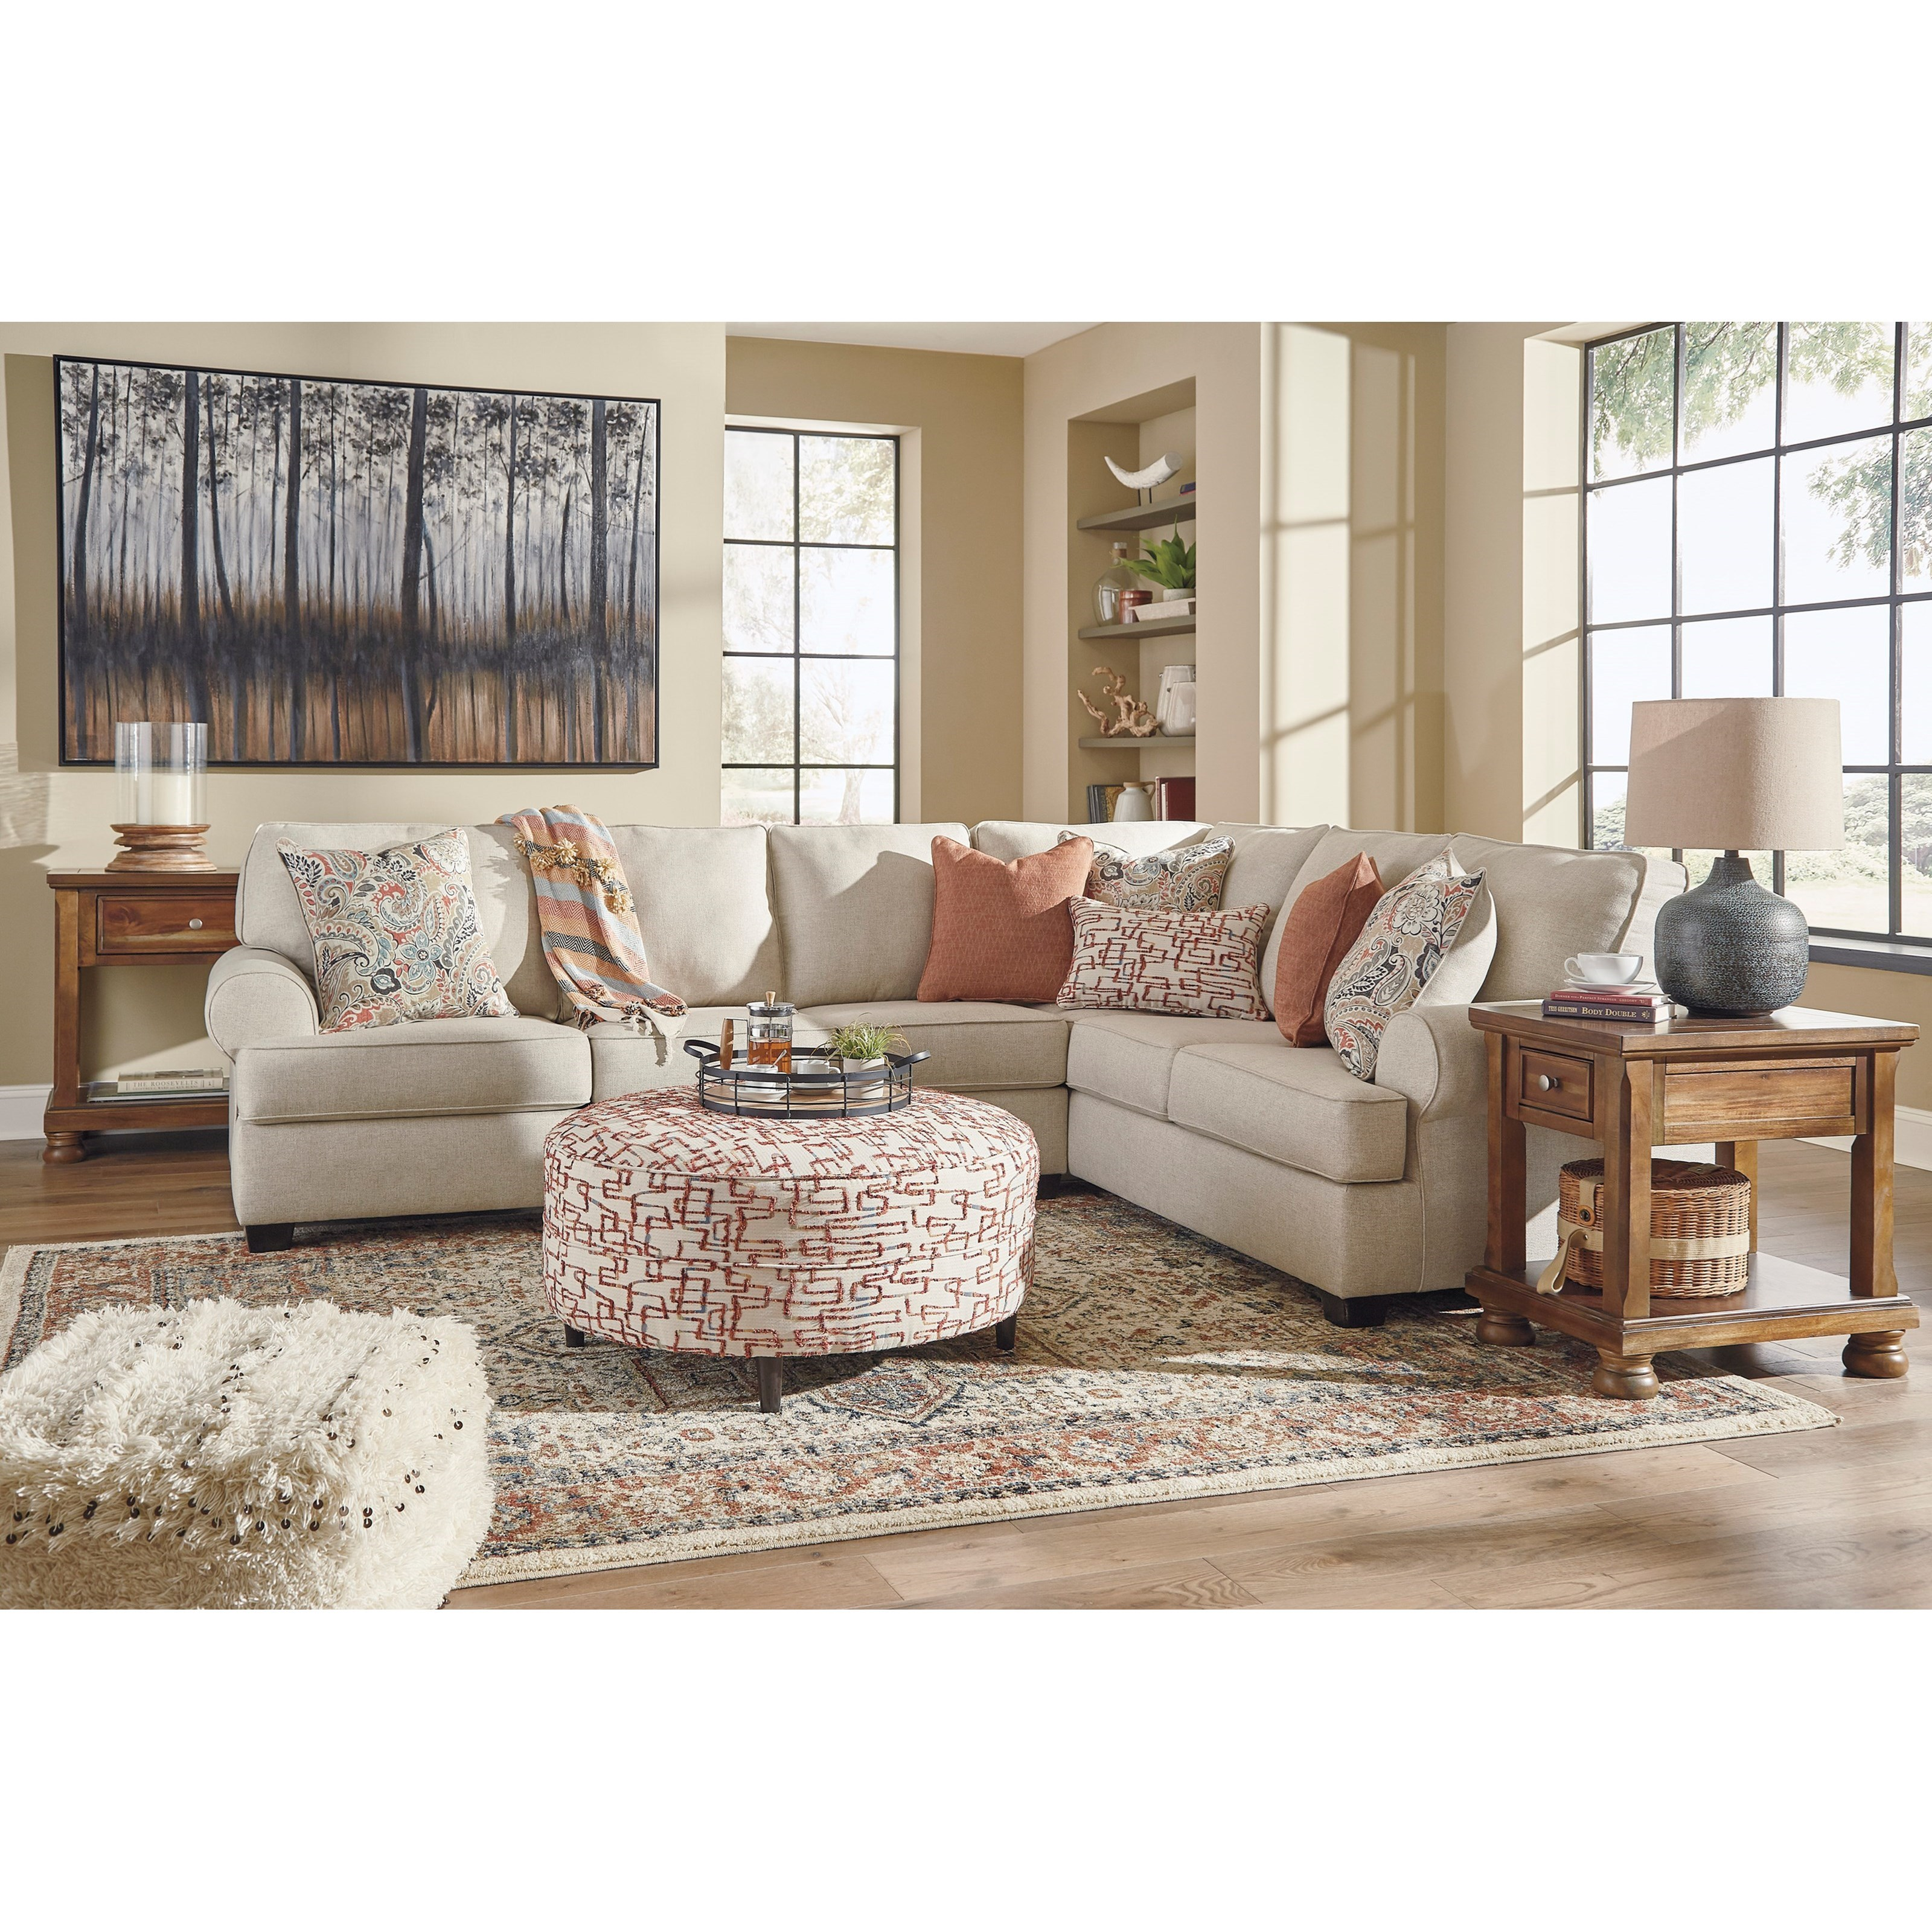 Amici Living Room Group at Van Hill Furniture